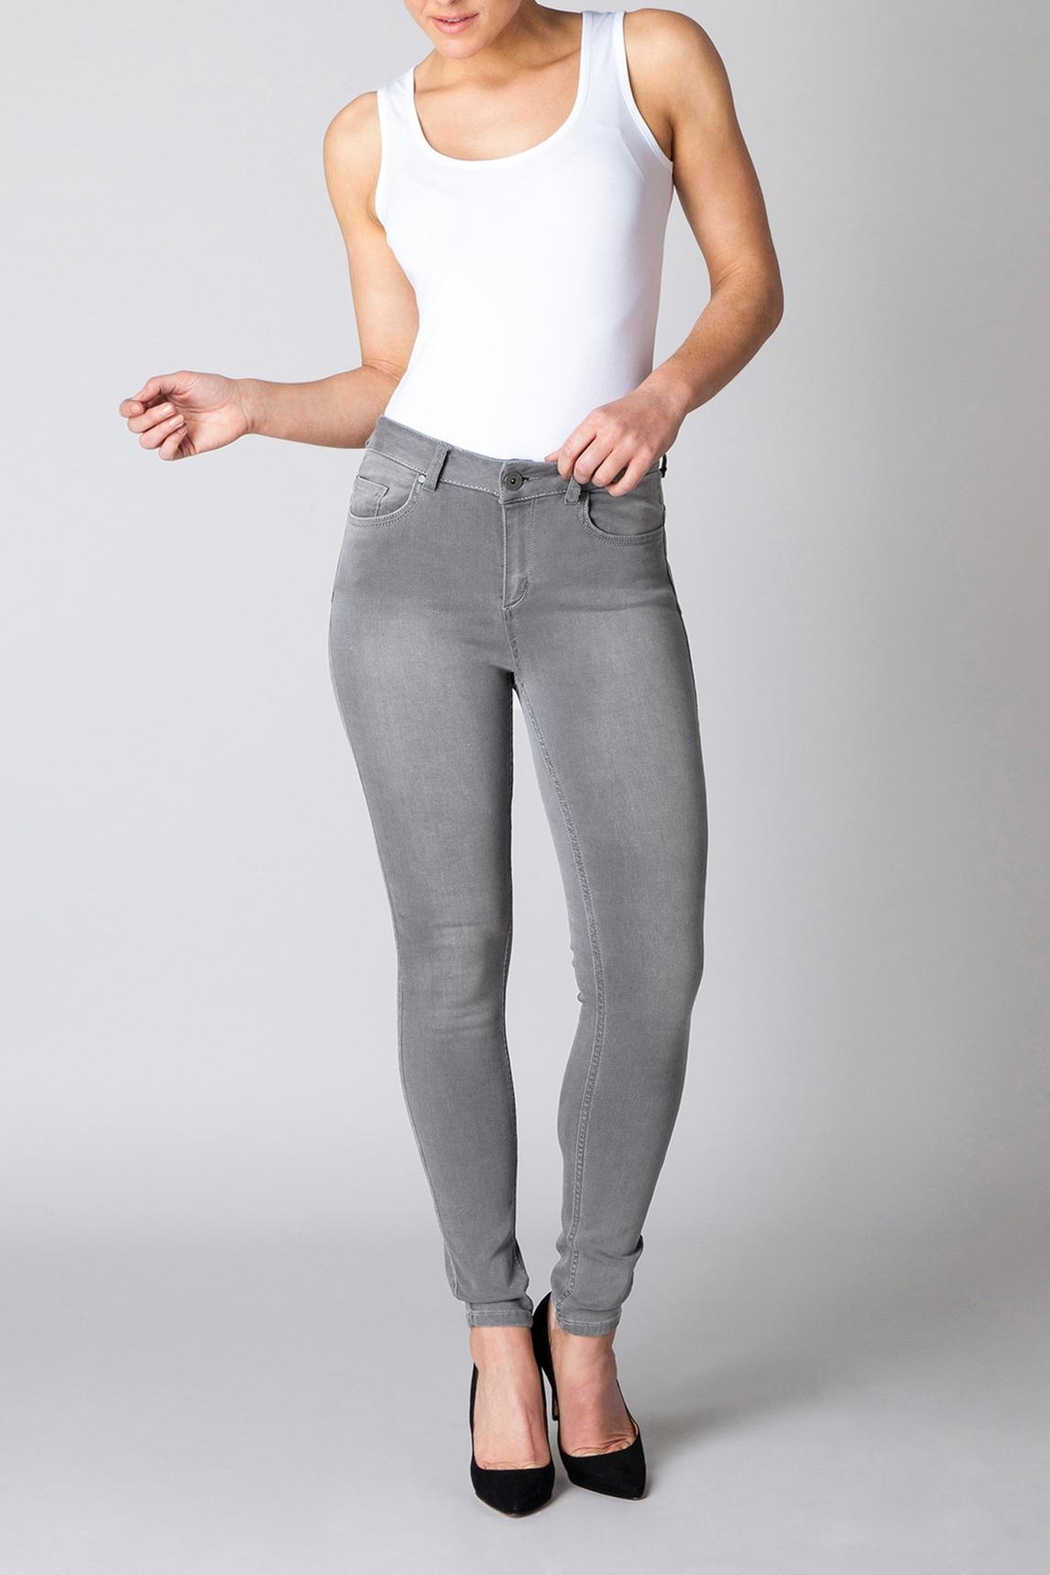 Yest Grey Slimming Jeans - Front Full Image